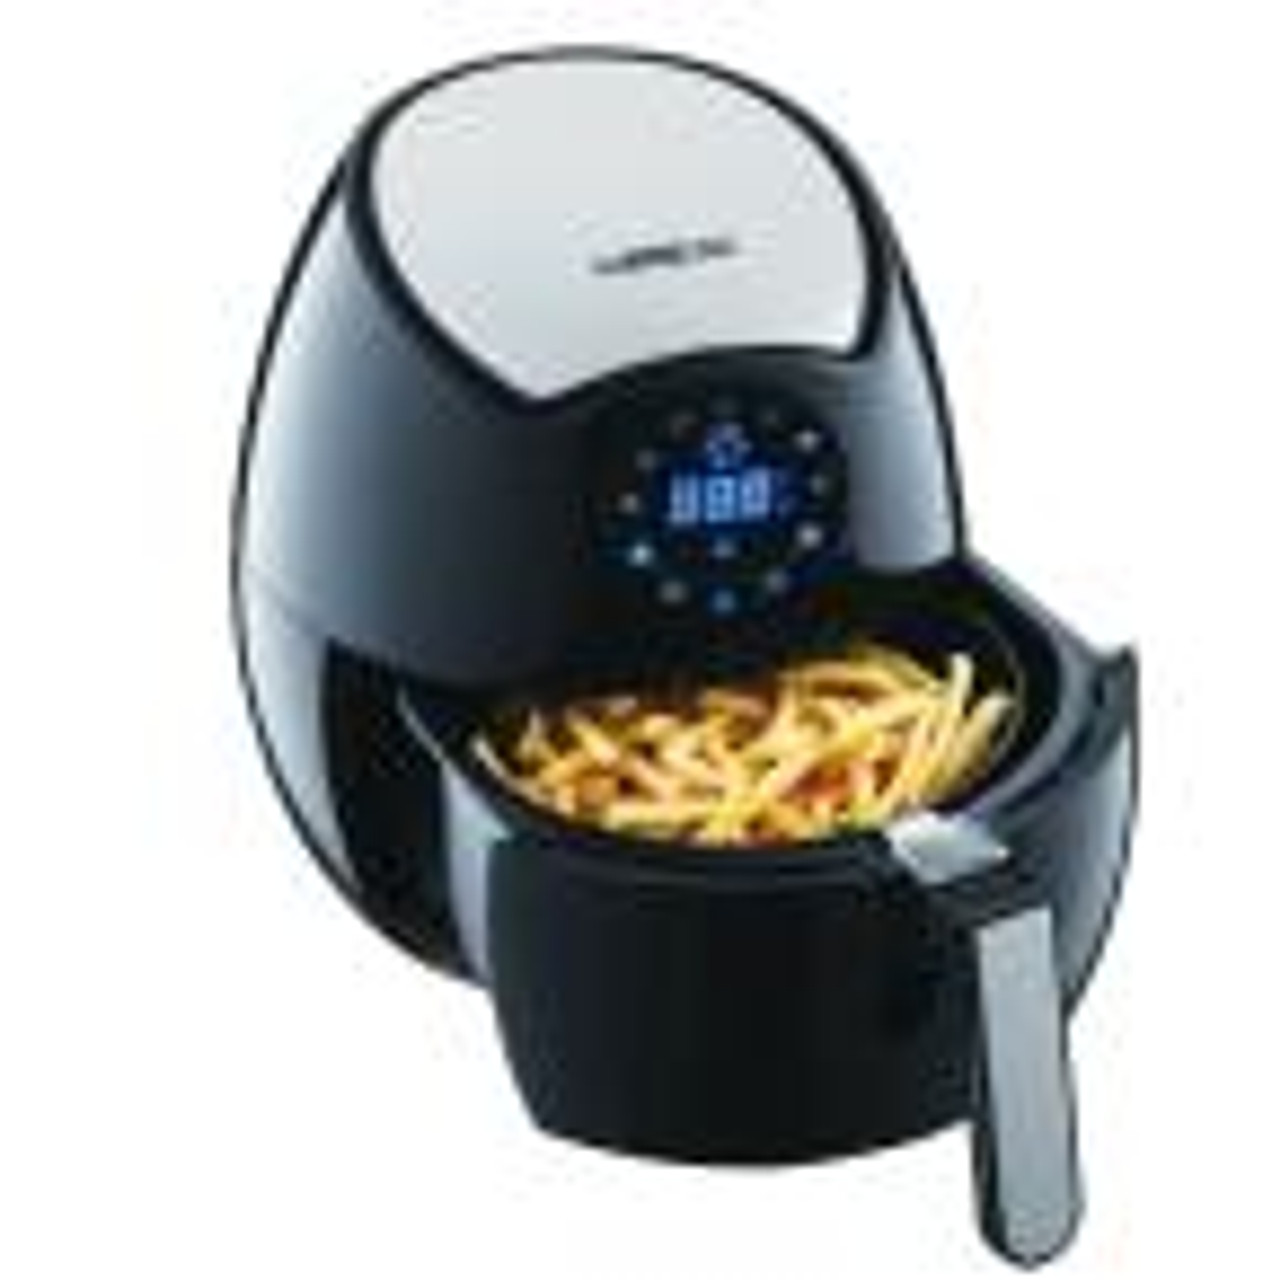 GoWISE USA GW22621 3.7-Quart 7-in-1 Programmable Digital Touchscreen Air Fryer with Recipe Book - Black